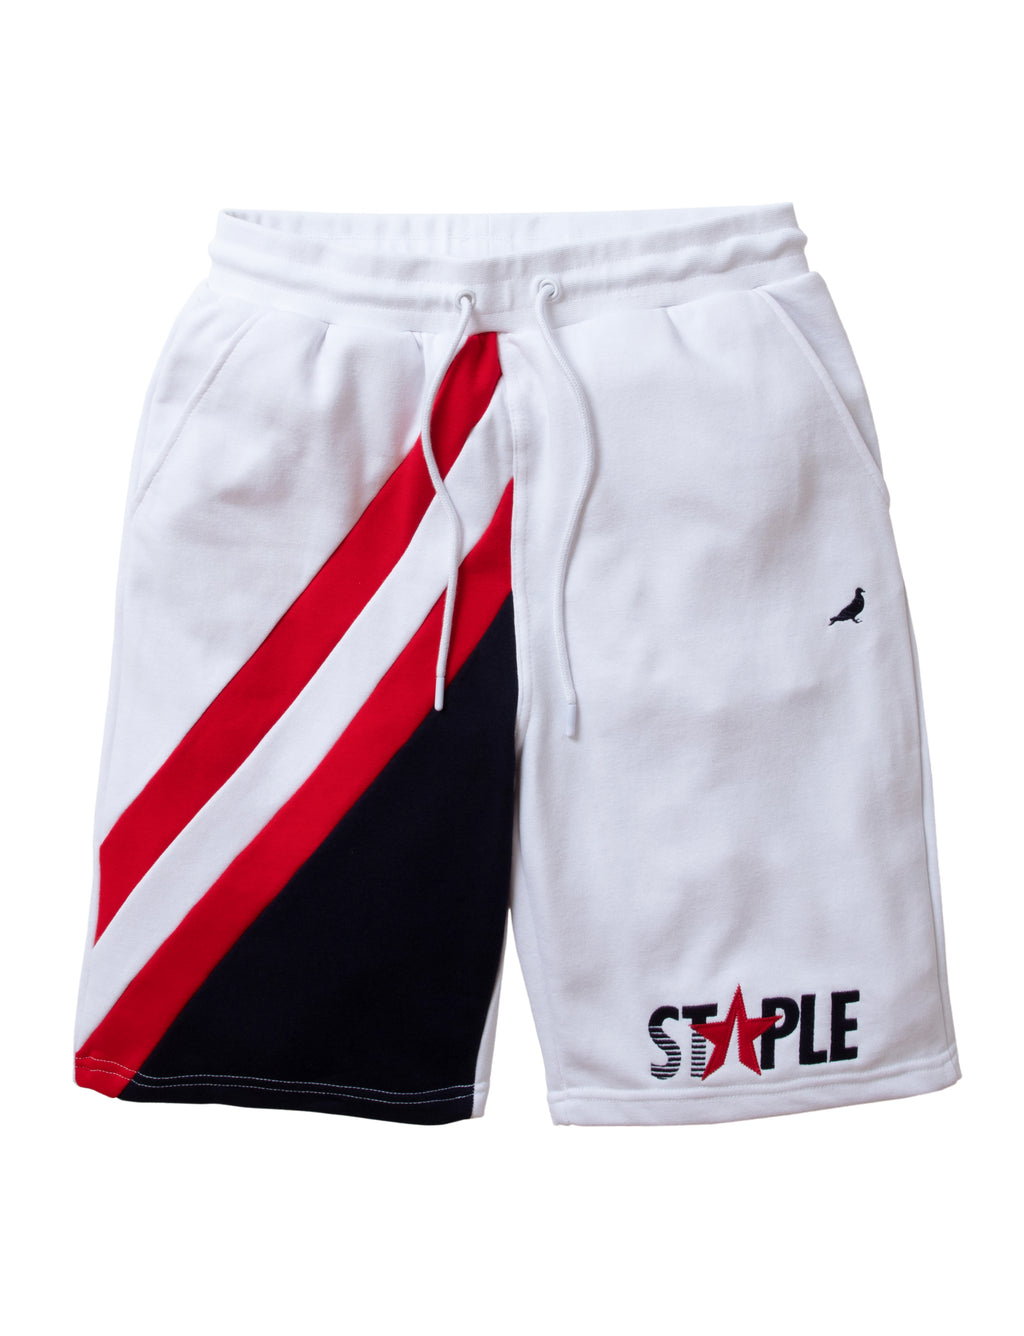 Americana Sweatshorts - Shorts | Staple Pigeon